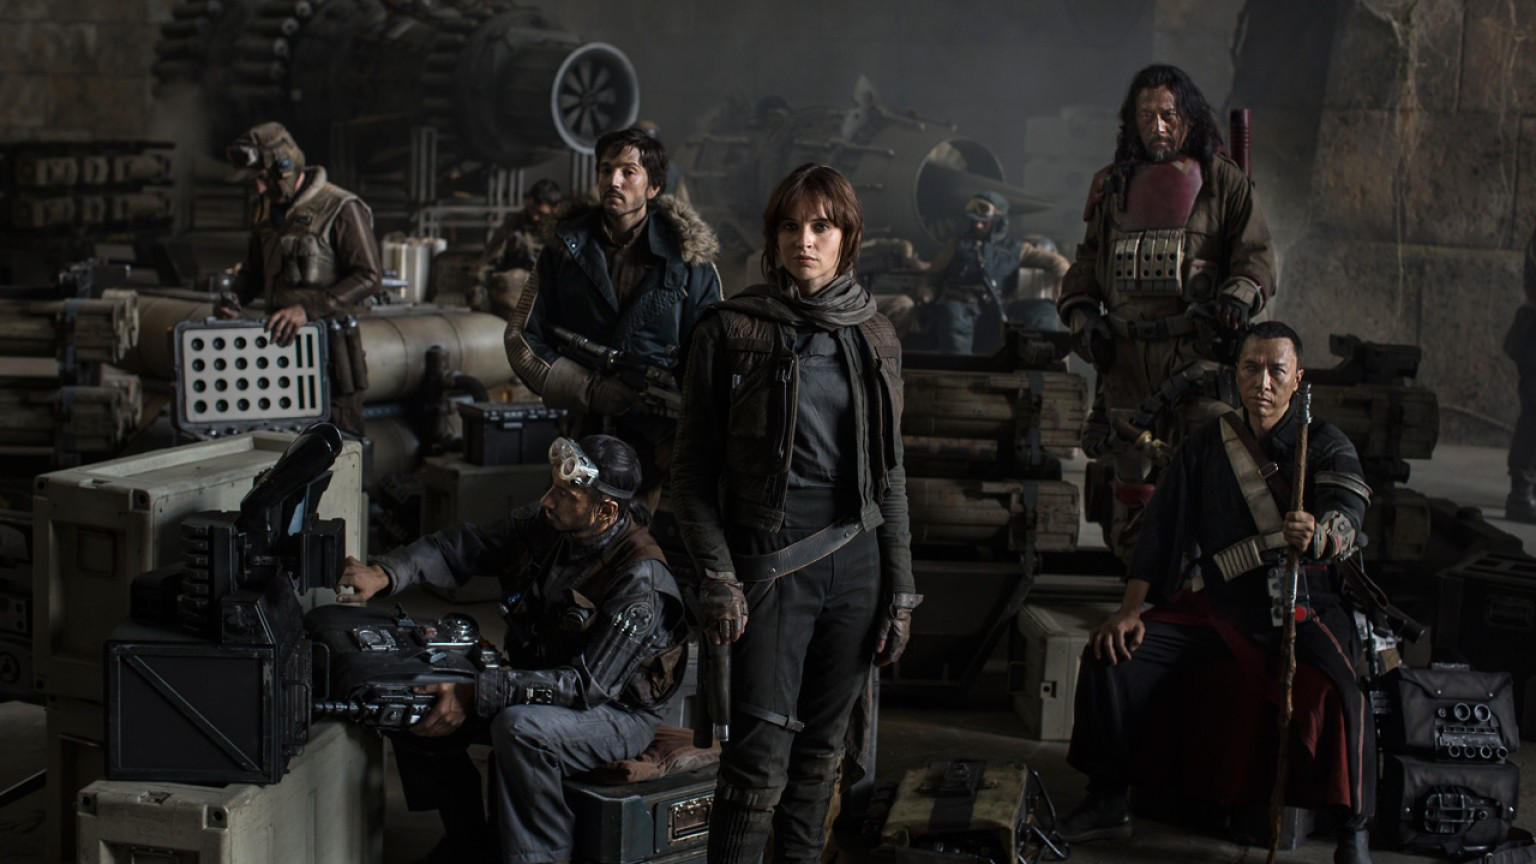 Watch the Trailer for 'Rogue One: A Star Wars Story' Here